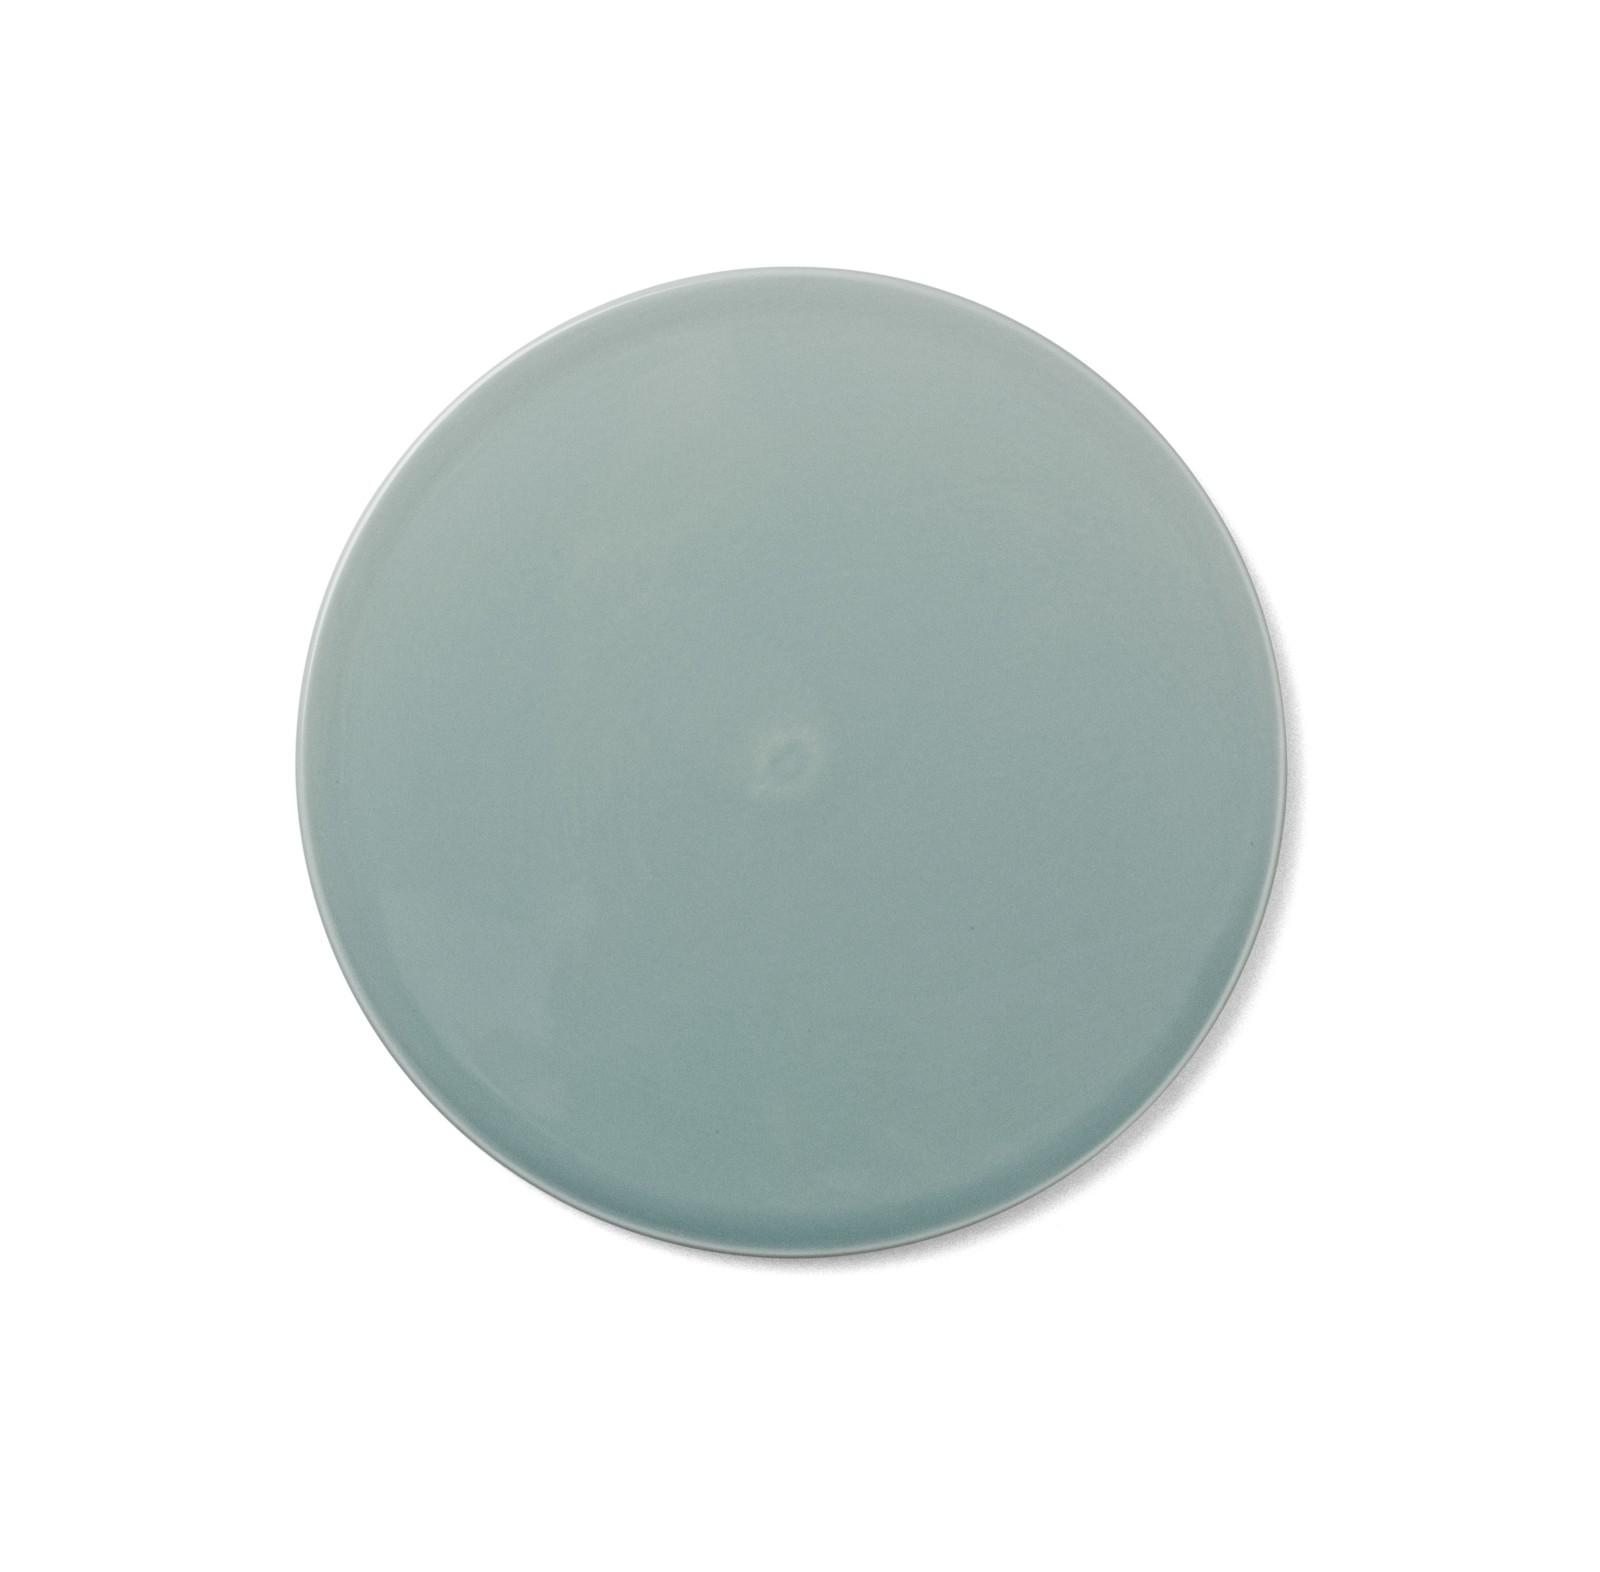 New Norm Plate/Lid - Set of 6 Diameter 21.5, Cool Green